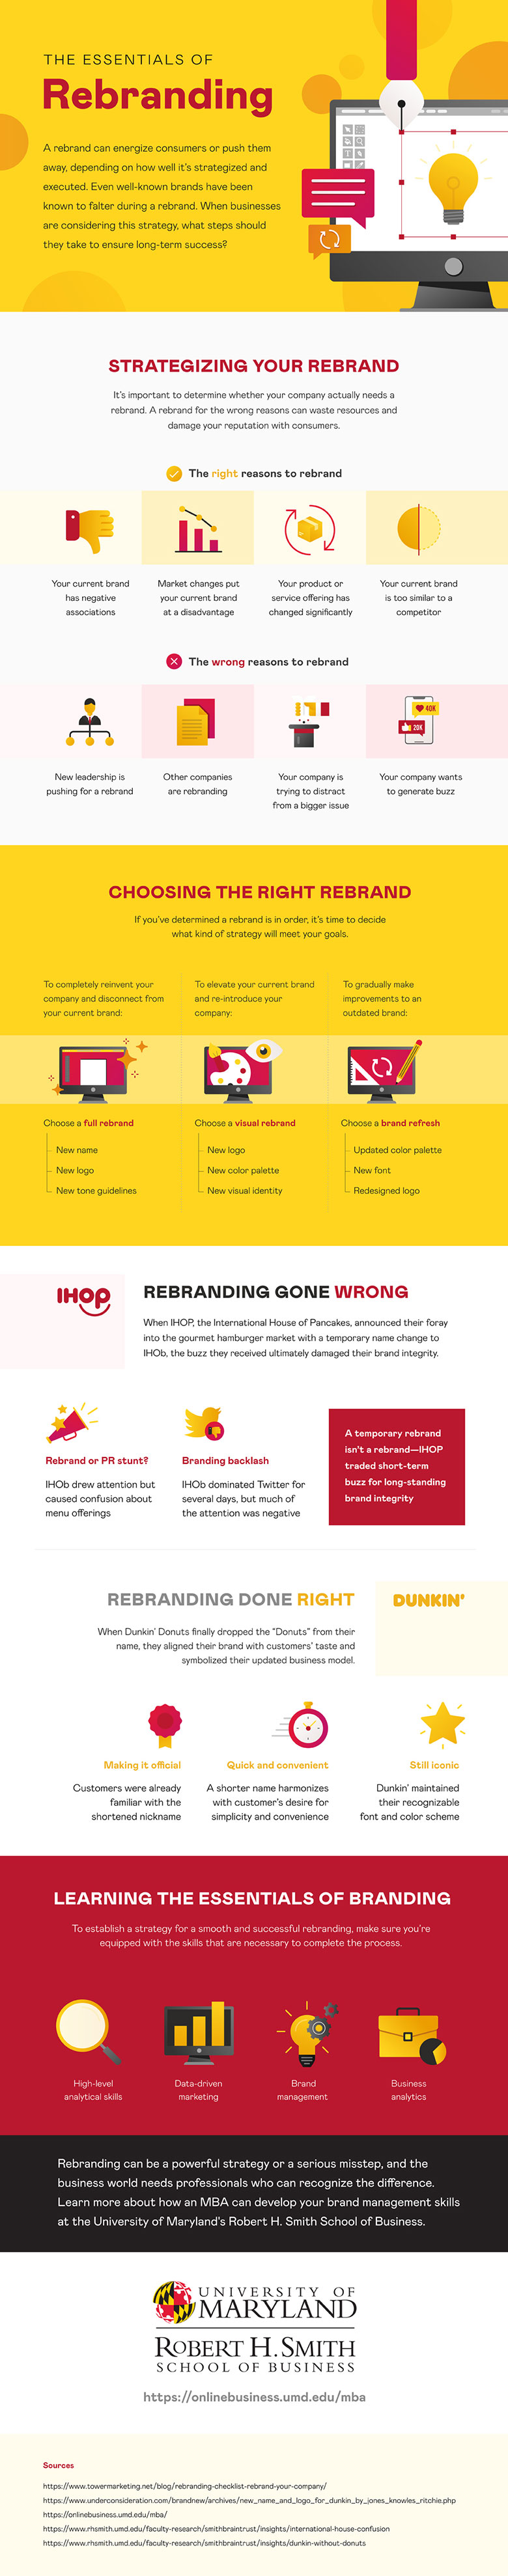 An infographic about how to successfully strategize a company rebrand by the UMD Robert H. Smith School of Business.